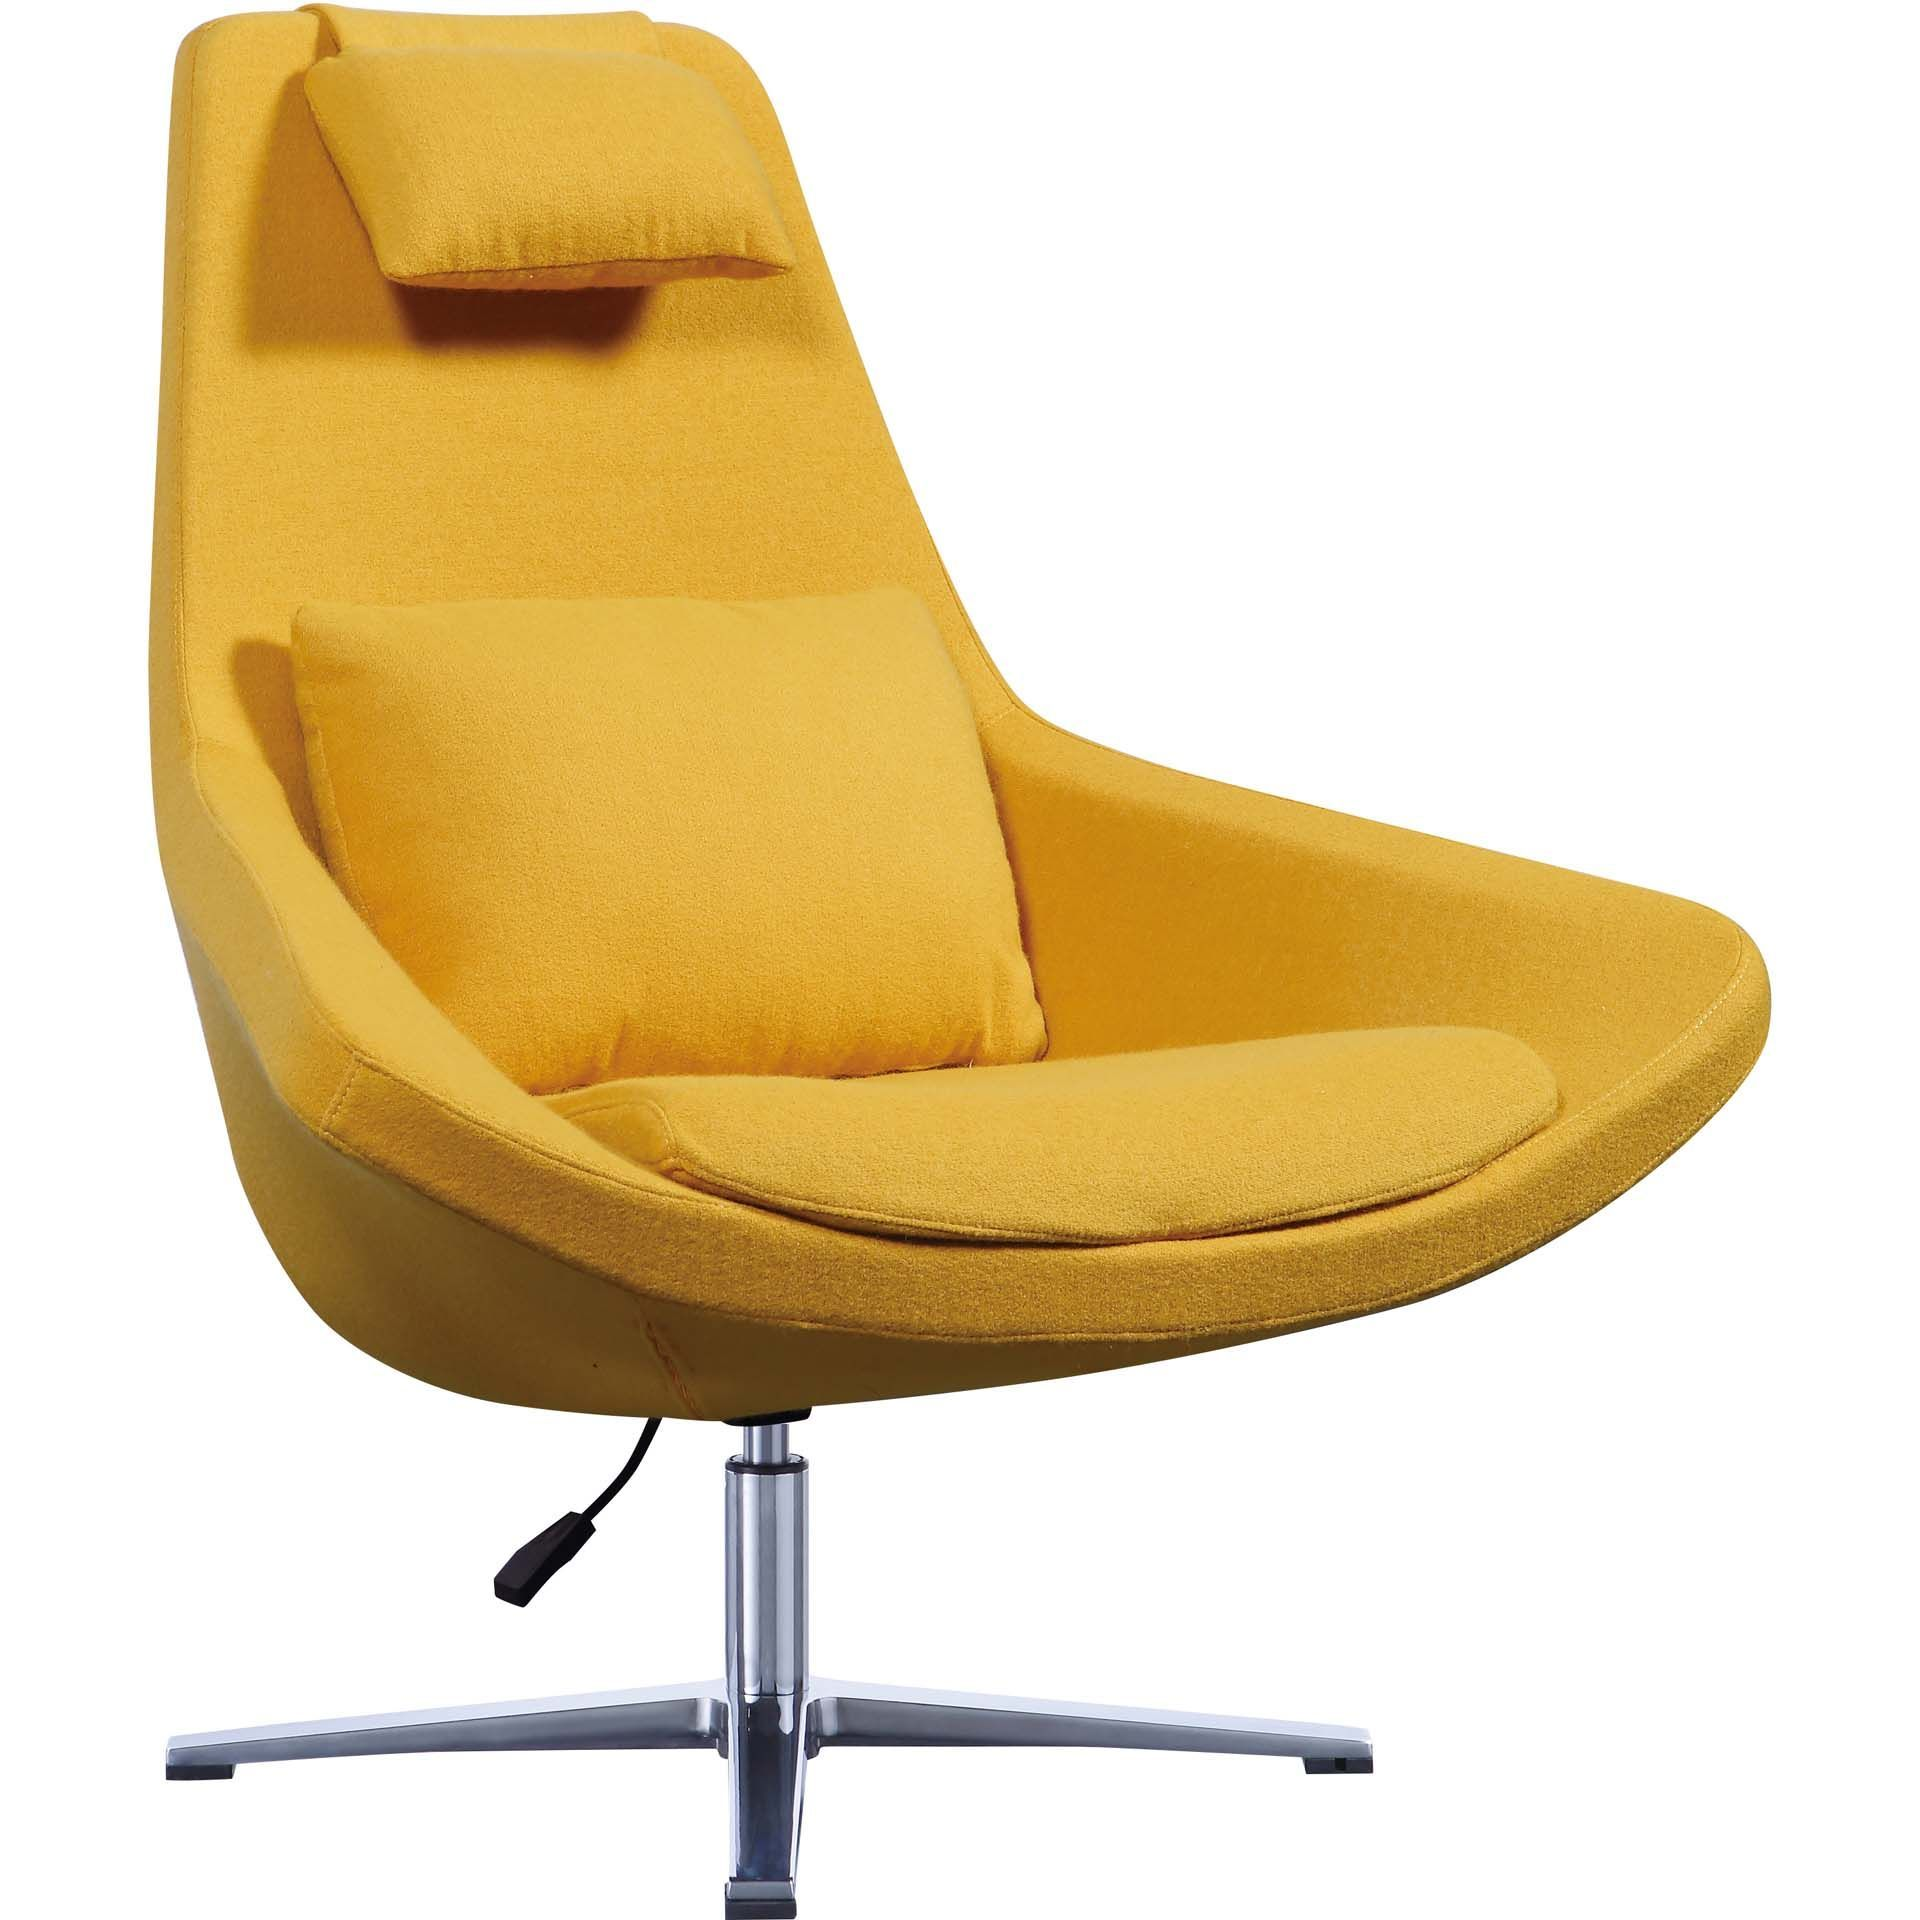 Relaxsessel Ruby Gelb Relaxsessel Sessel Relaxen